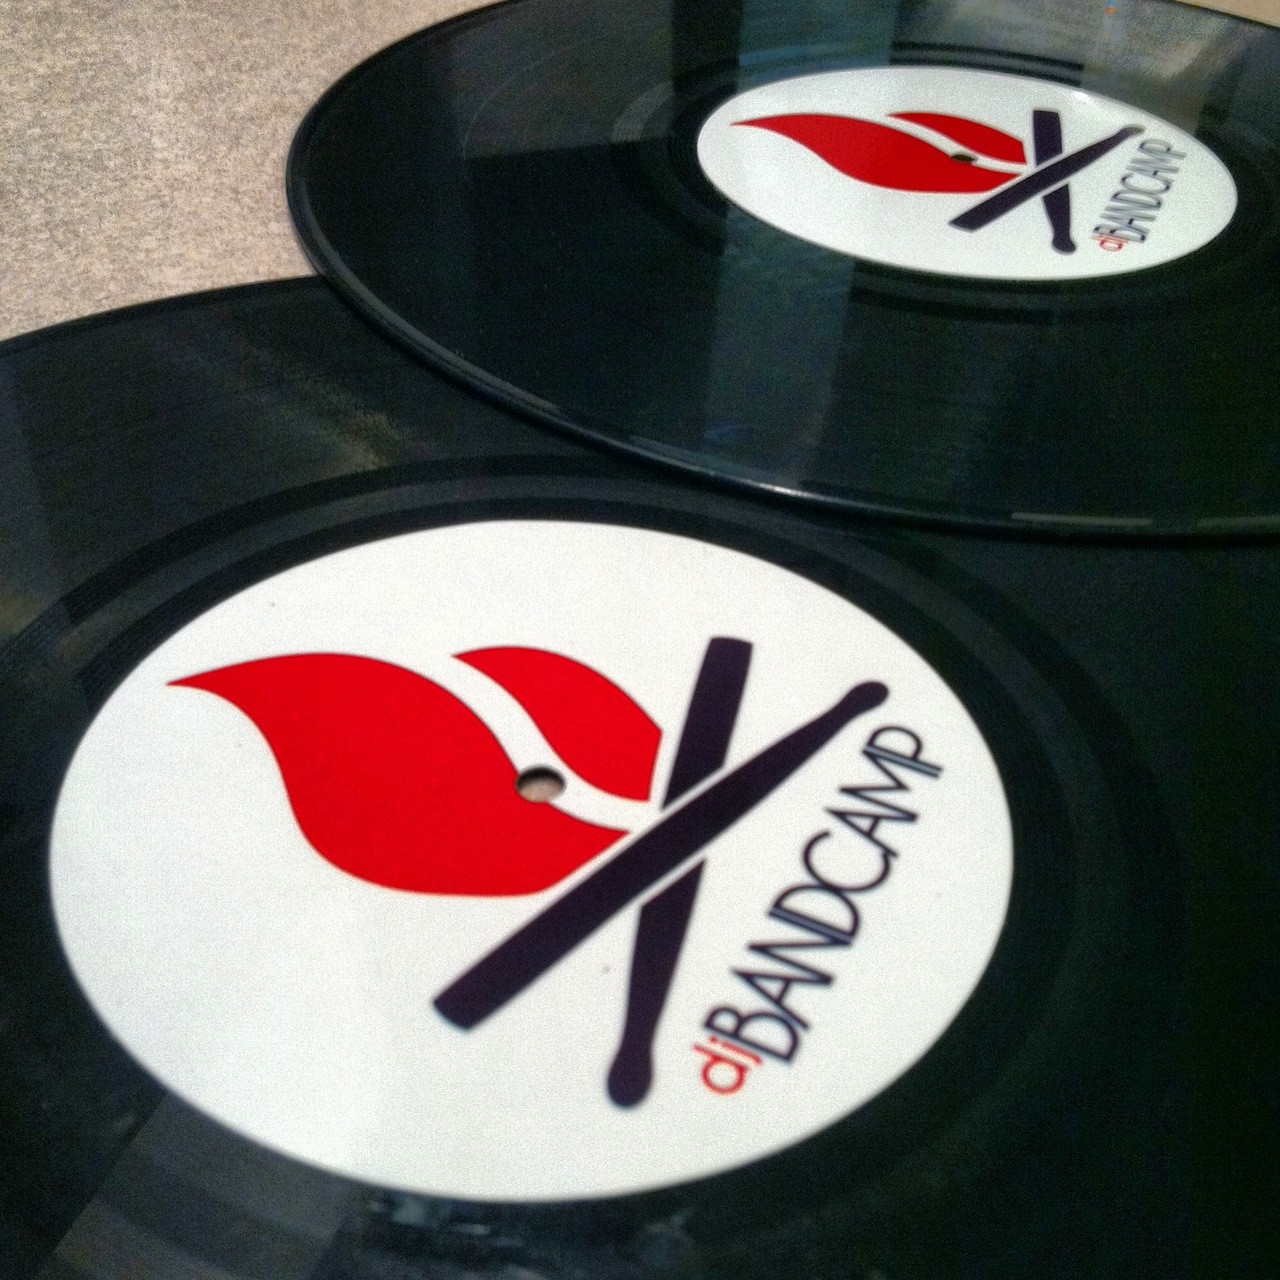 Custom record labels x1 personalize your own price 9 99 image 1